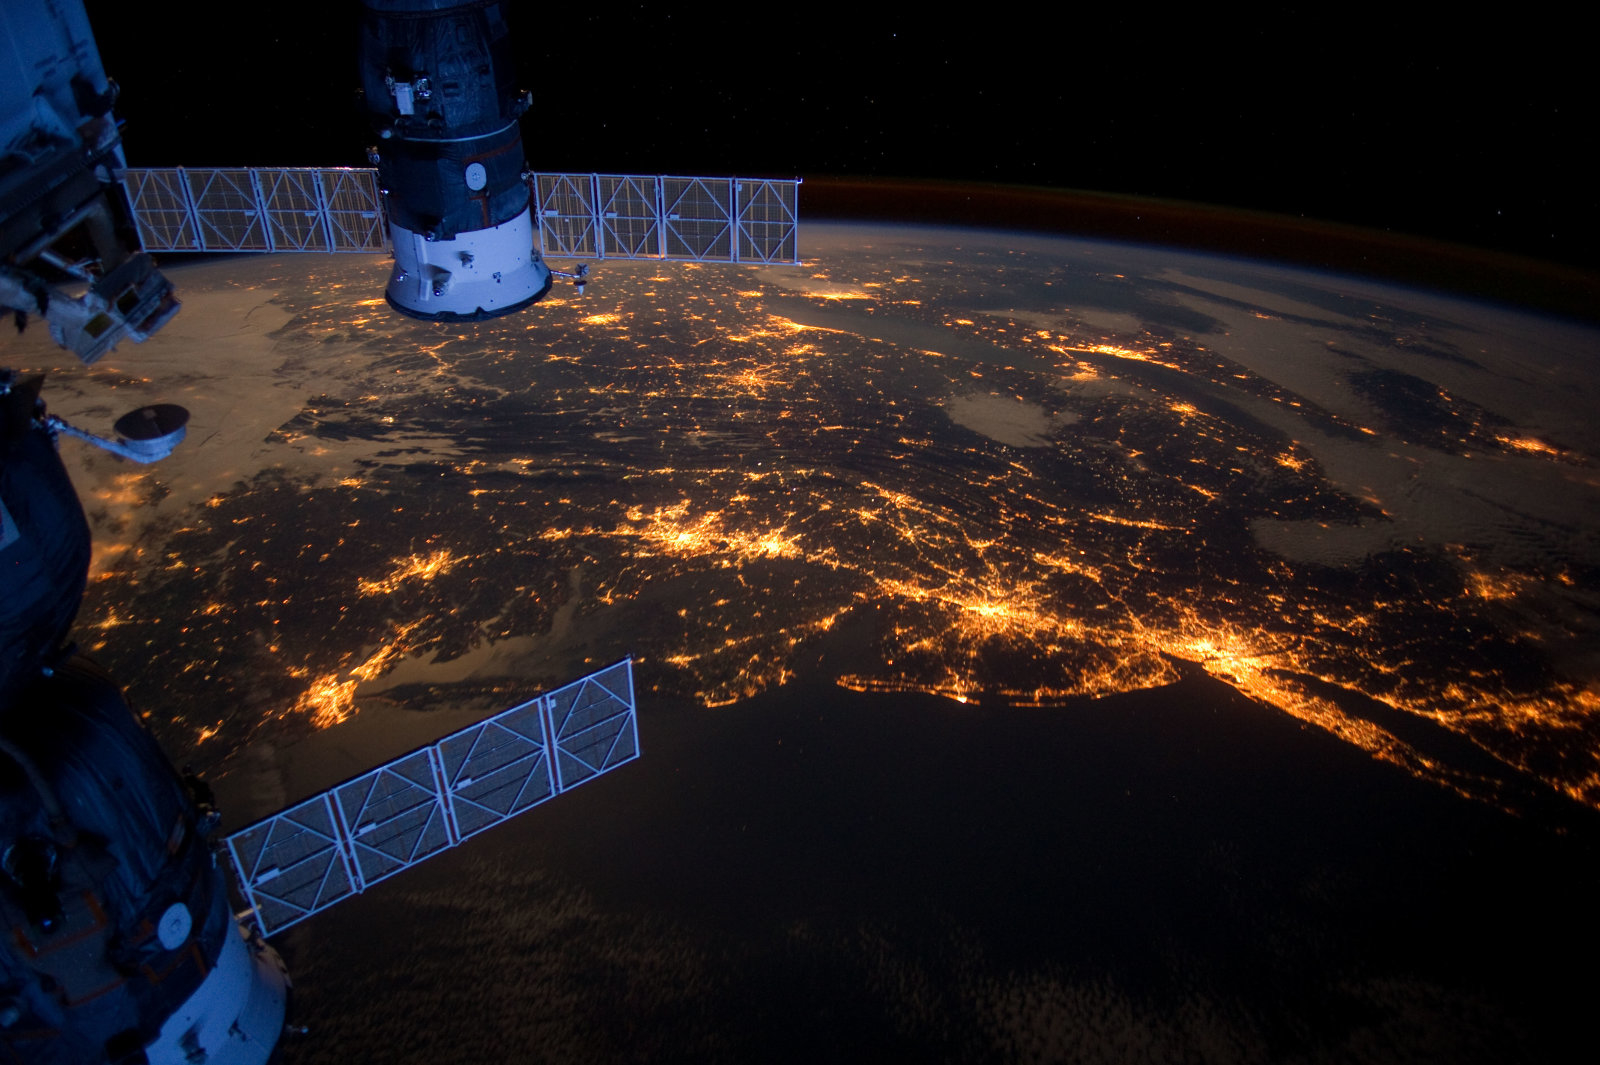 SPACE - FEBRUARY 6: The Atlantic coast of the United States taken at night from the International Space Station on February 6, 2012 in Space. An Expedition 30 crew member aboard the International Space Station took this night time photograph of much of the Atlantic coast of the United States. Large metropolitan areas and other easily recognizable sites from the Virginia/Maryland/Washington, D.C. area are visible in the image that spans almost to Rhode Island. Boston is just out of frame at right. Long Island and the New York City area are visible in the lower right quadrant. Philadelphia and Pittsburgh are near the center. Parts of two Russian vehicles parked at the orbital outpost are seen in left foreground. PHOTOGRAPH BY NASA / Barcroft Media /Barcoft Media via Getty Images